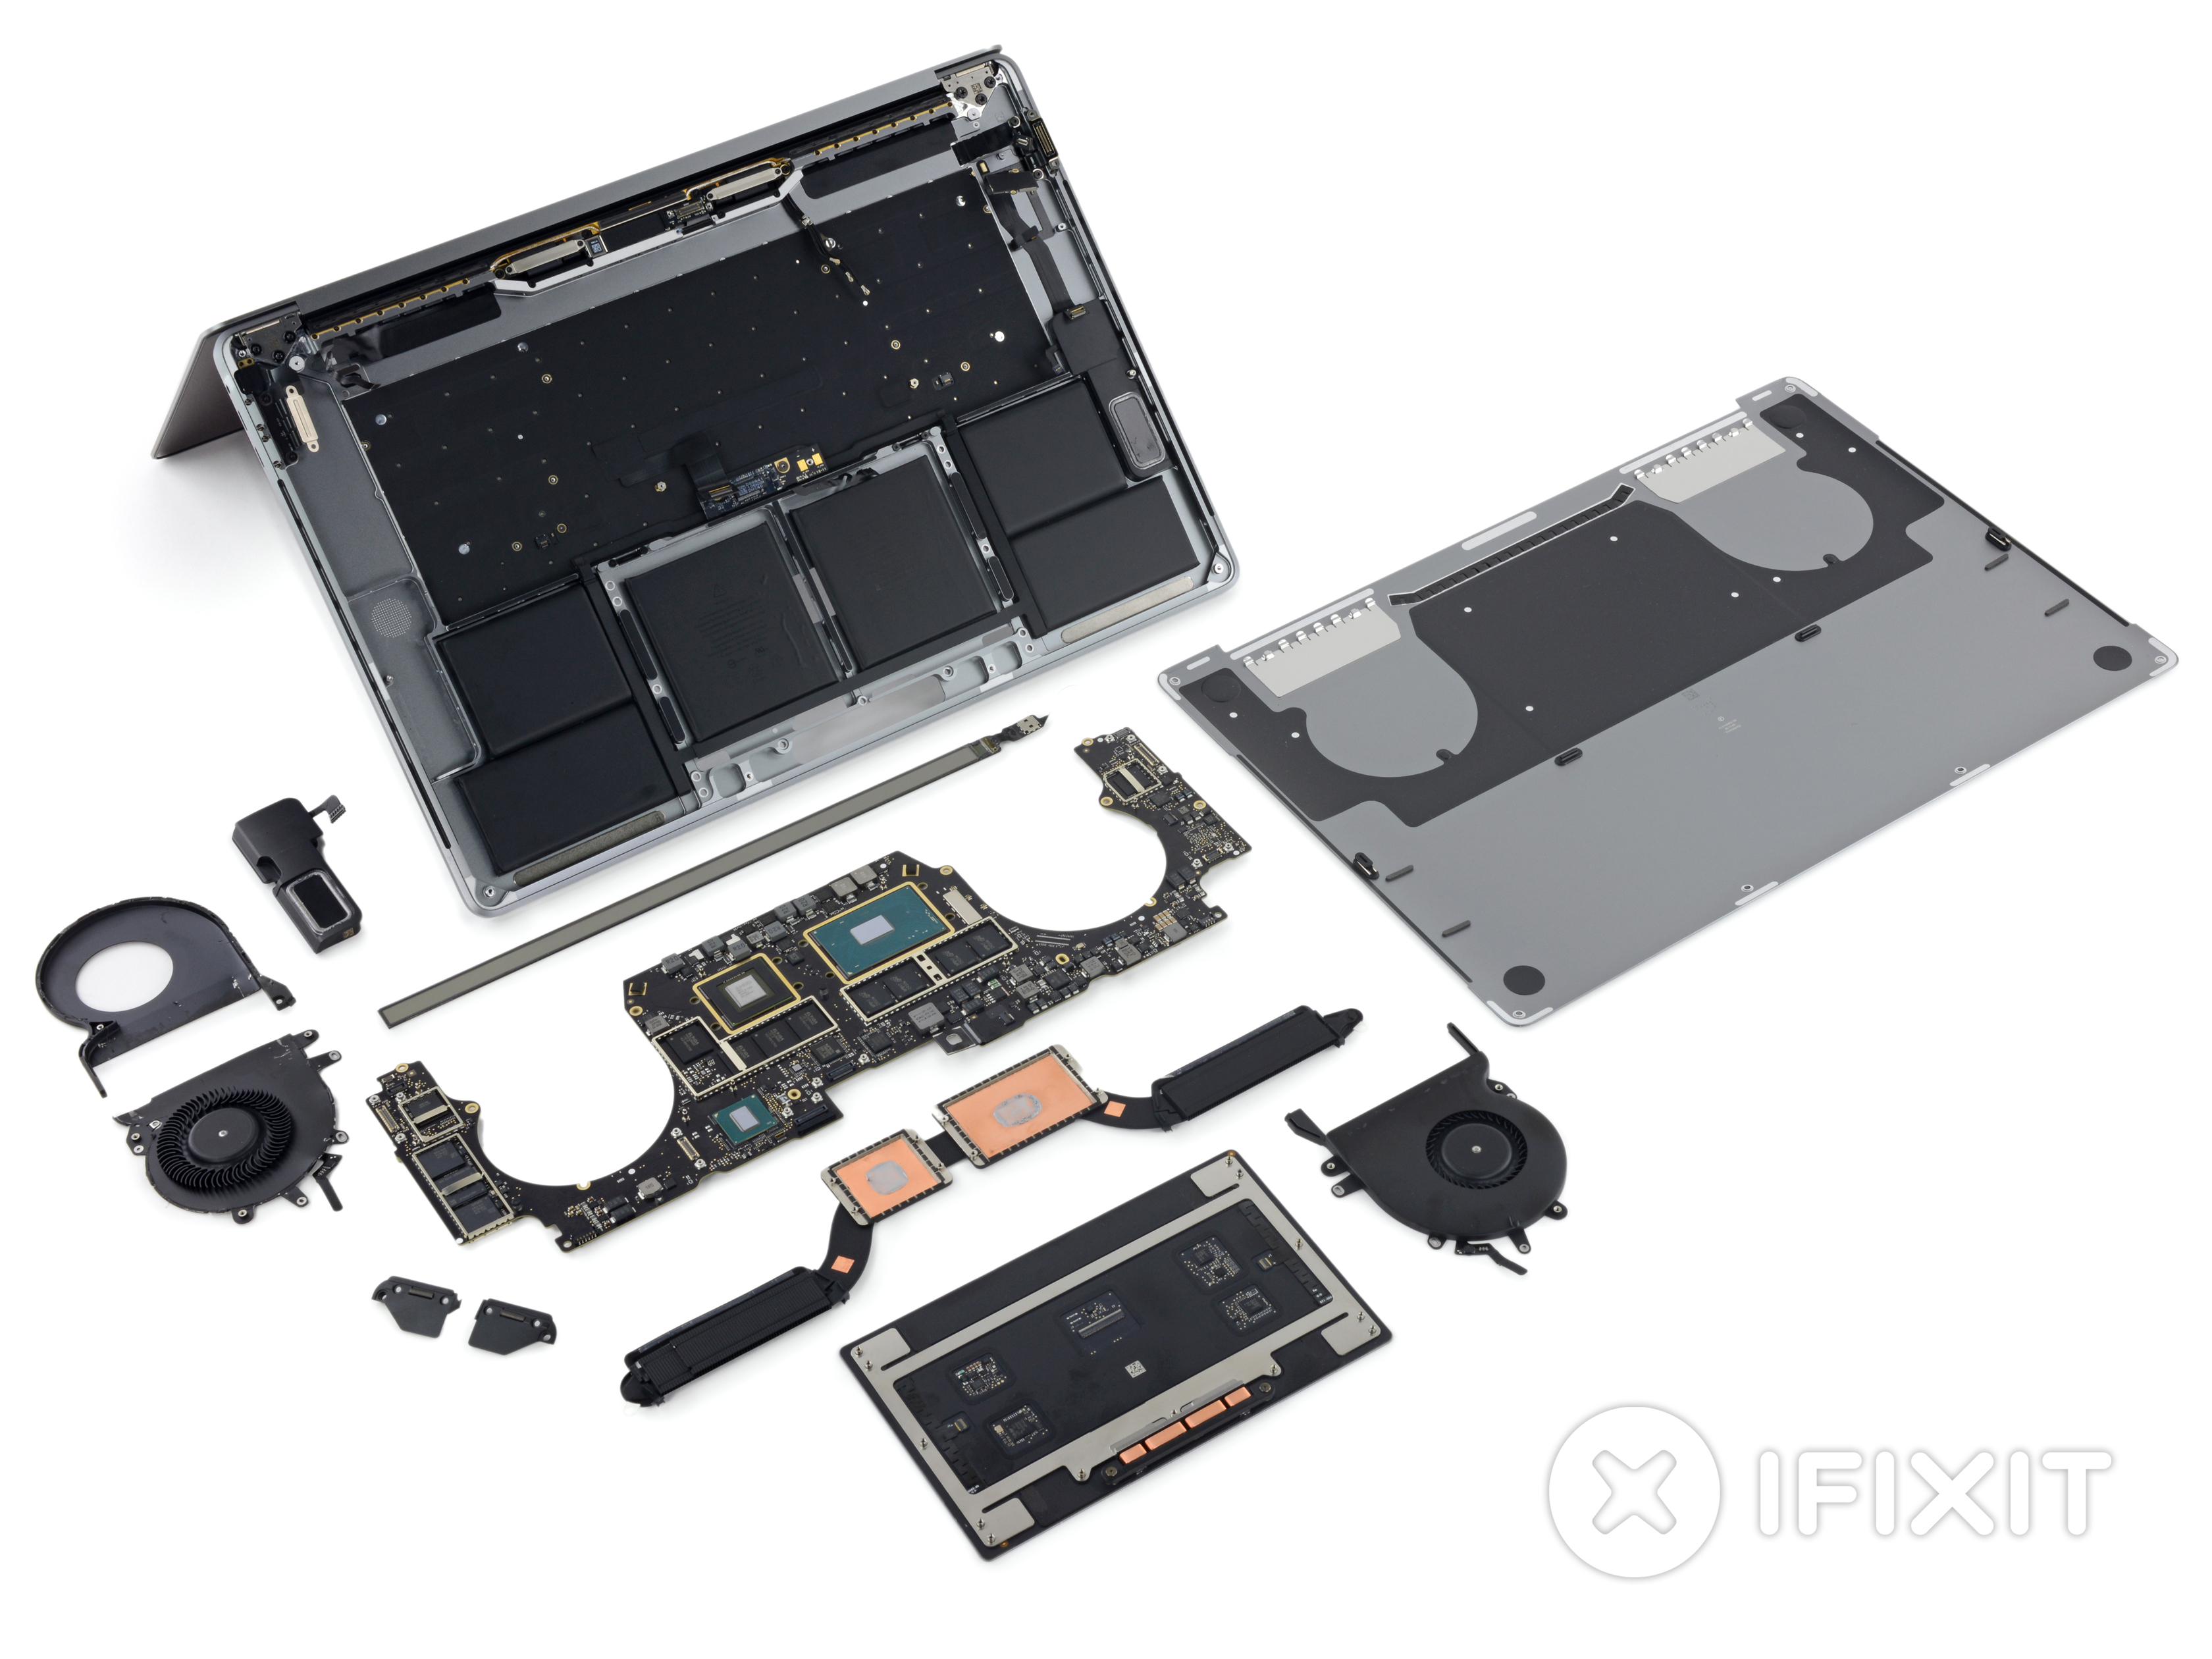 Macbook Pro 15 Touch Bar Teardown Ifixit Types Of Printed Circuit Boards Pcb Universe Inc